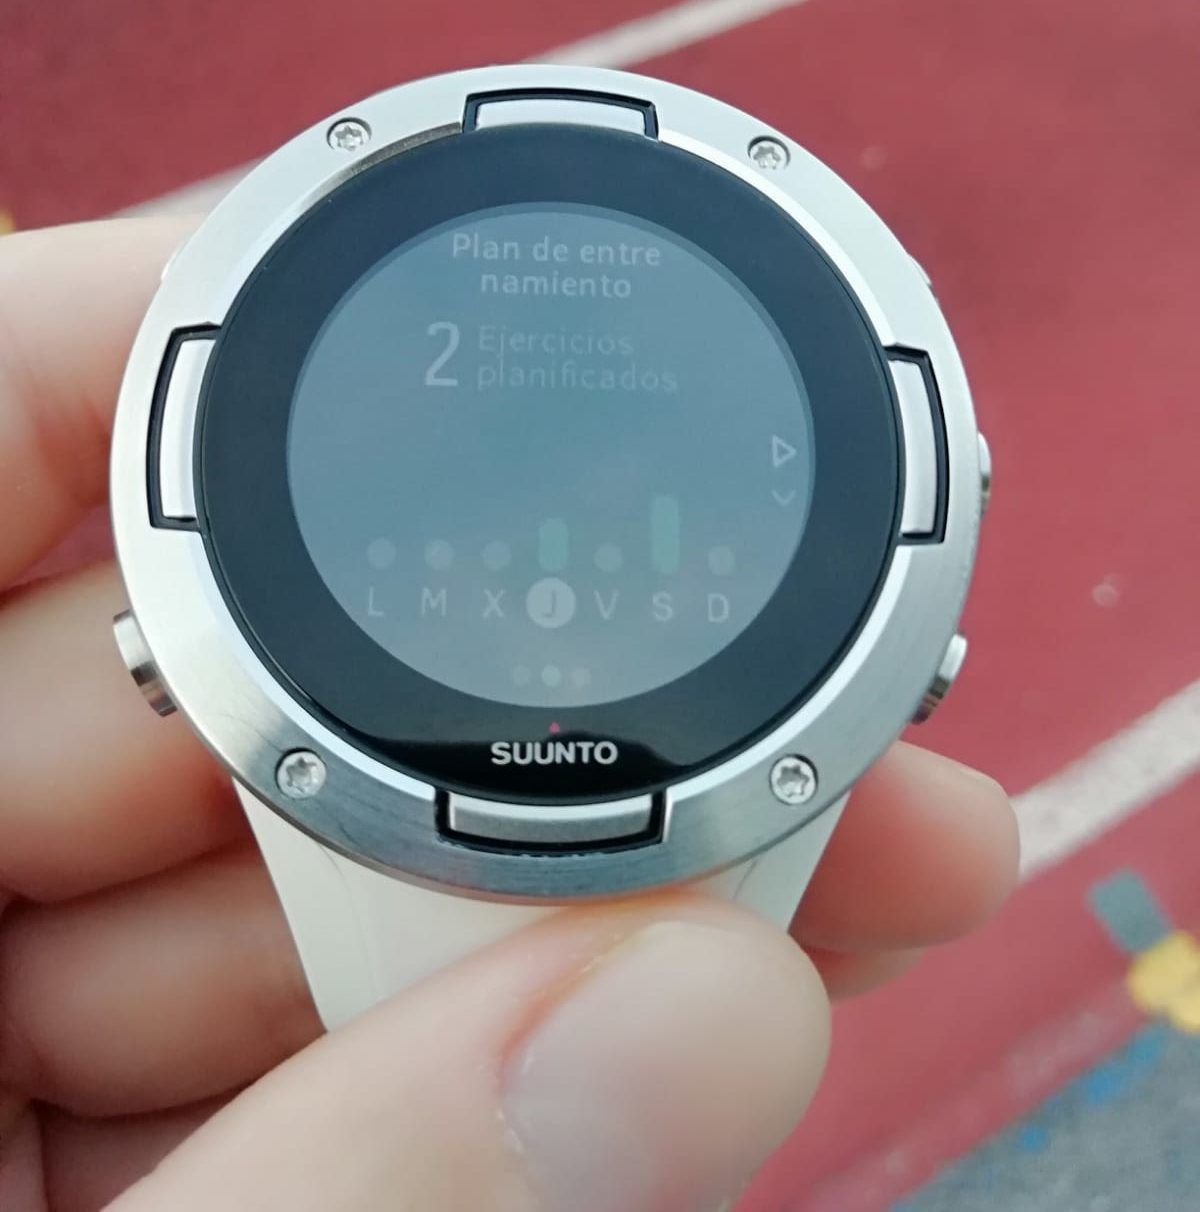 The Suunto 5 GPS watch and its training plans